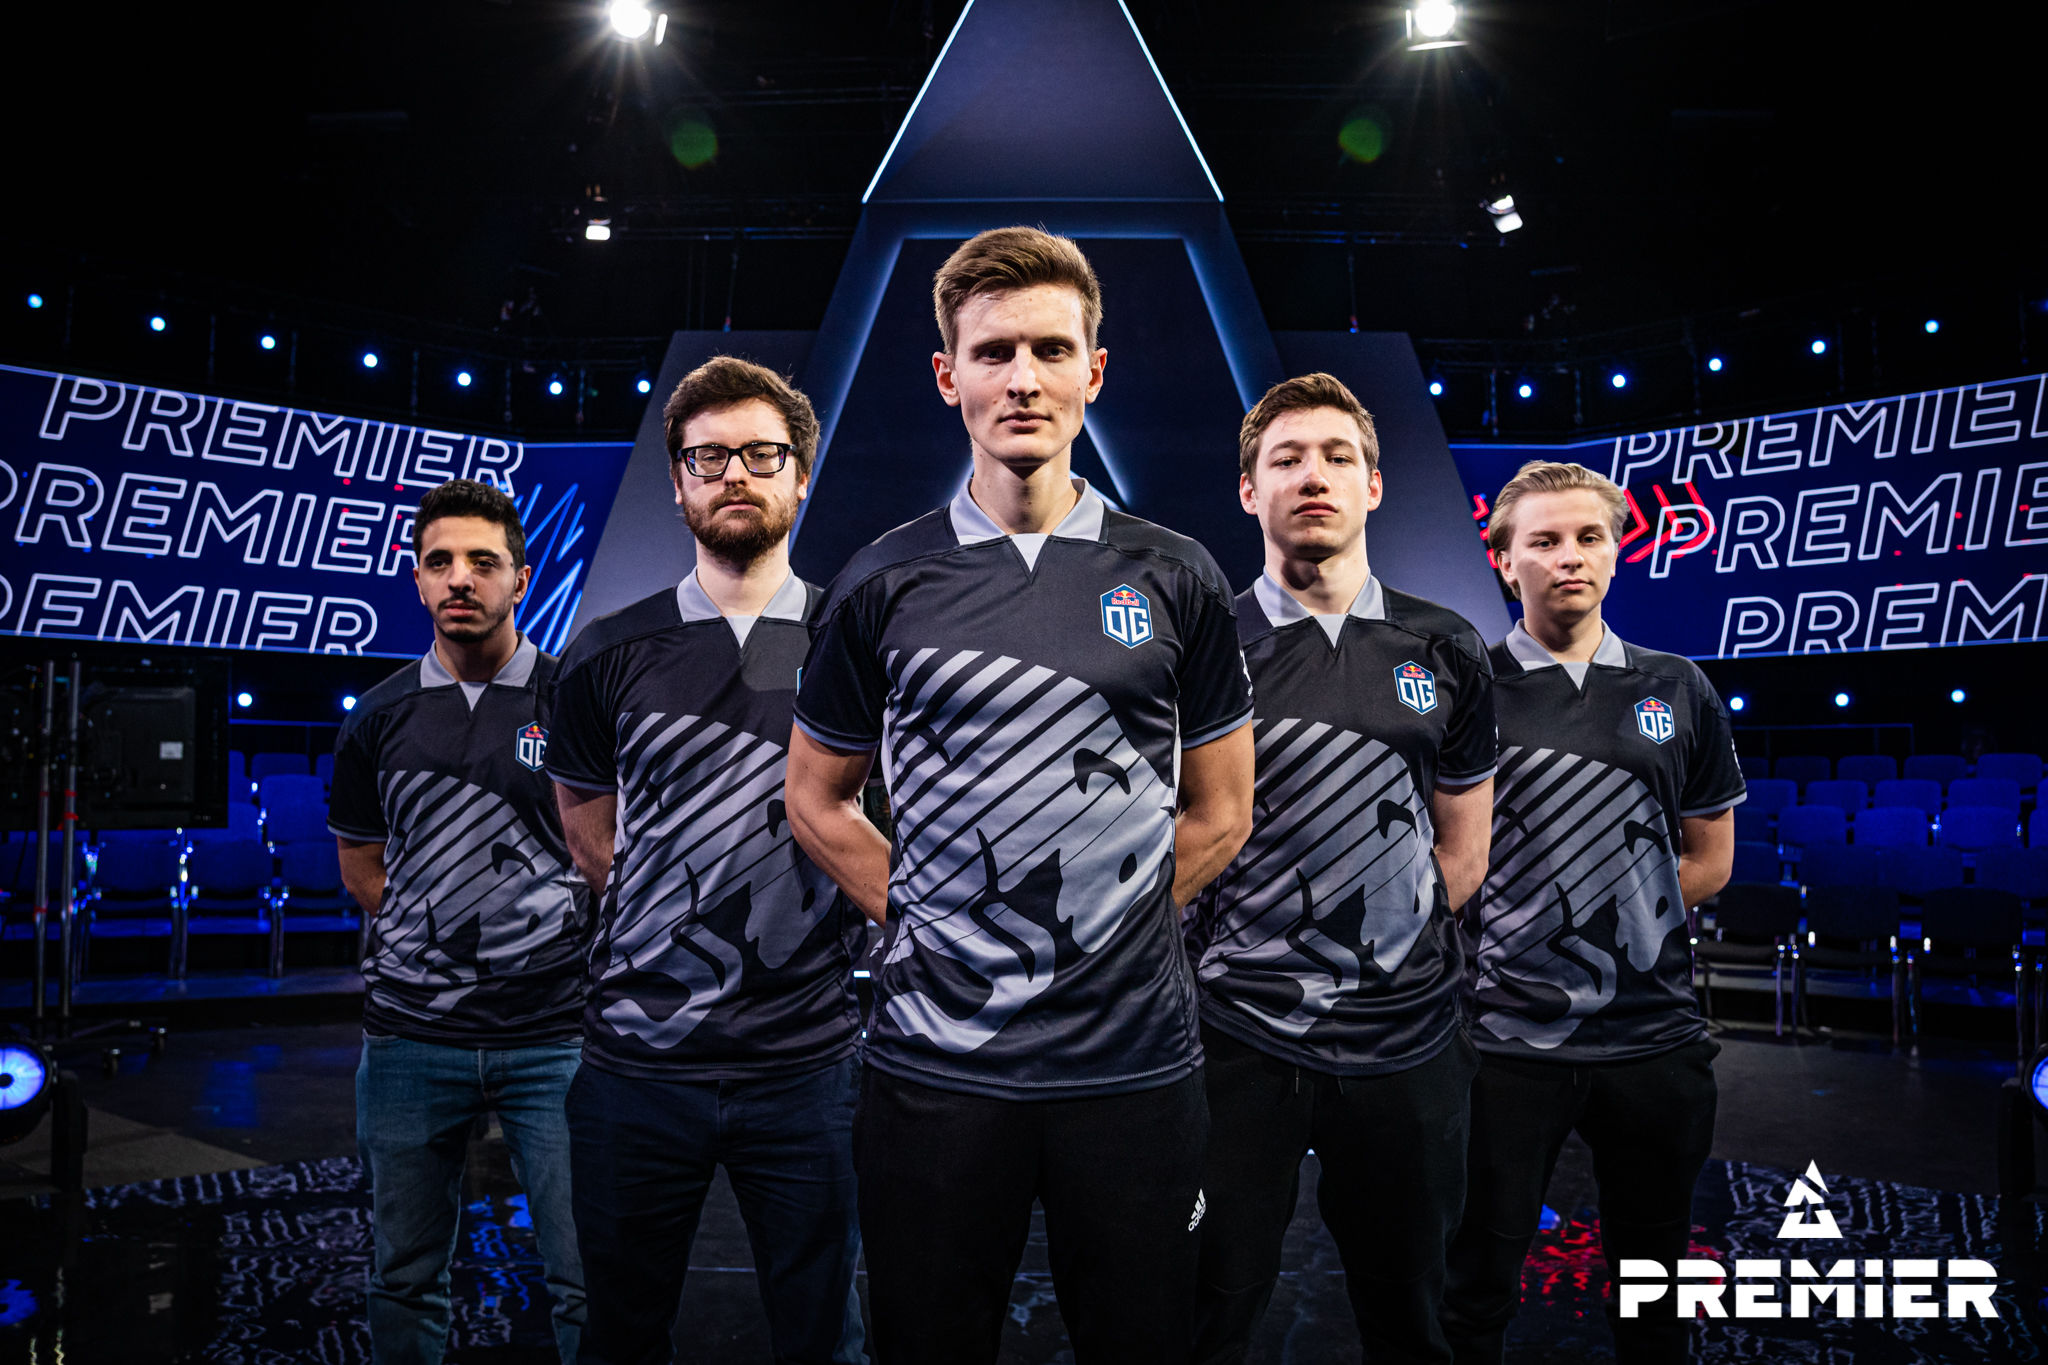 ESL One: Cologne 2020 - Sprout pokonuje BIG, OG lepsze od Ninjas in Pyjamas. ESL One: Cologne 2020 1